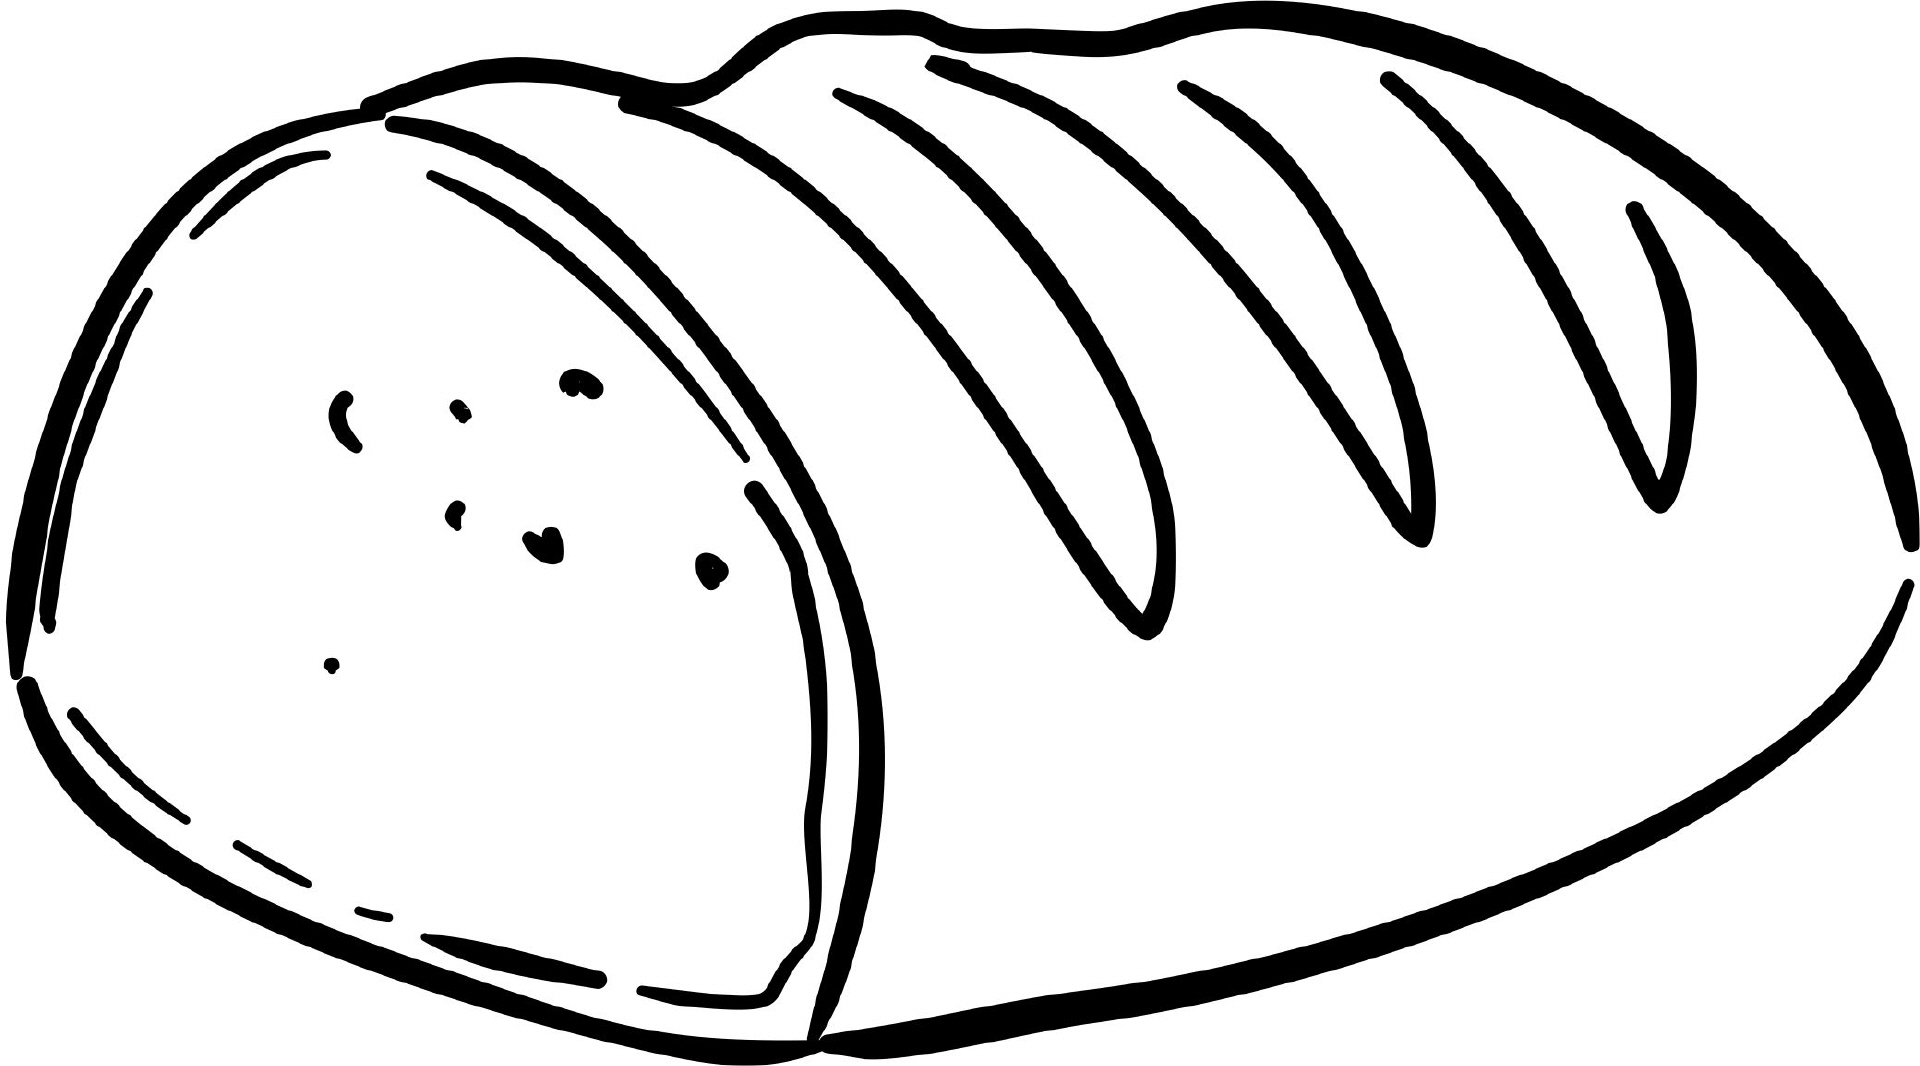 Brotscheibe Clipart 7 Clipart Station